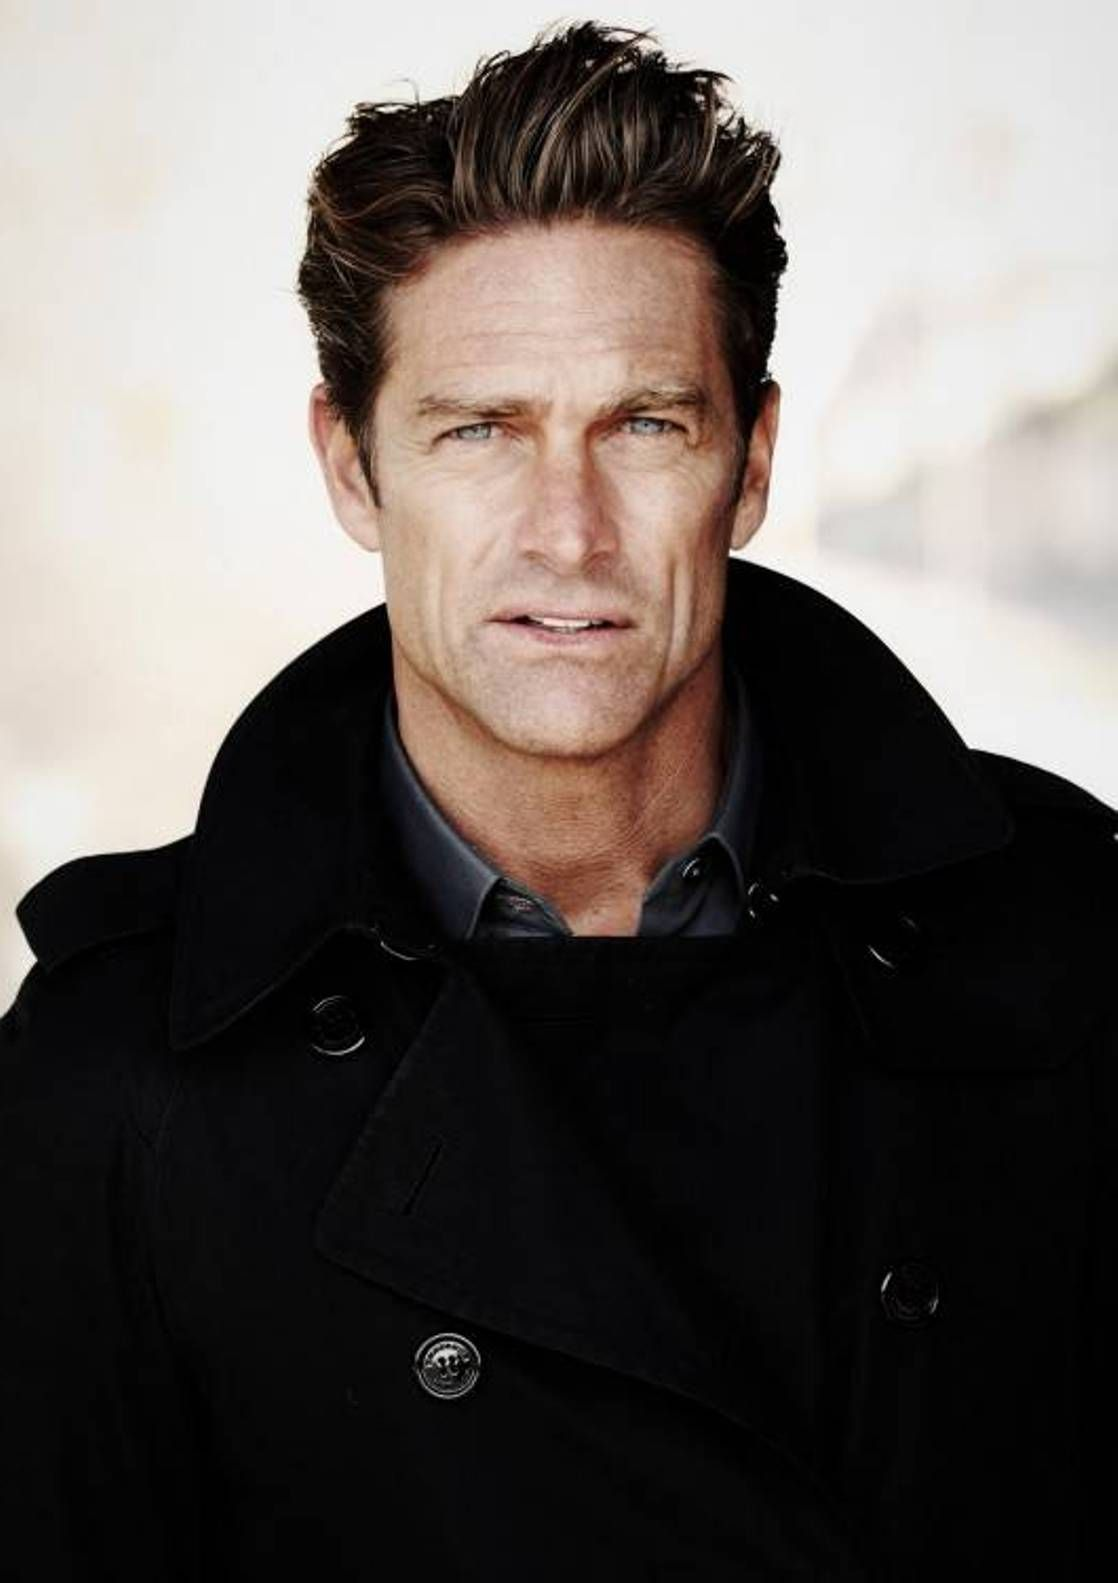 cool mature mens hairstyles - celebrity plastic surgery photos